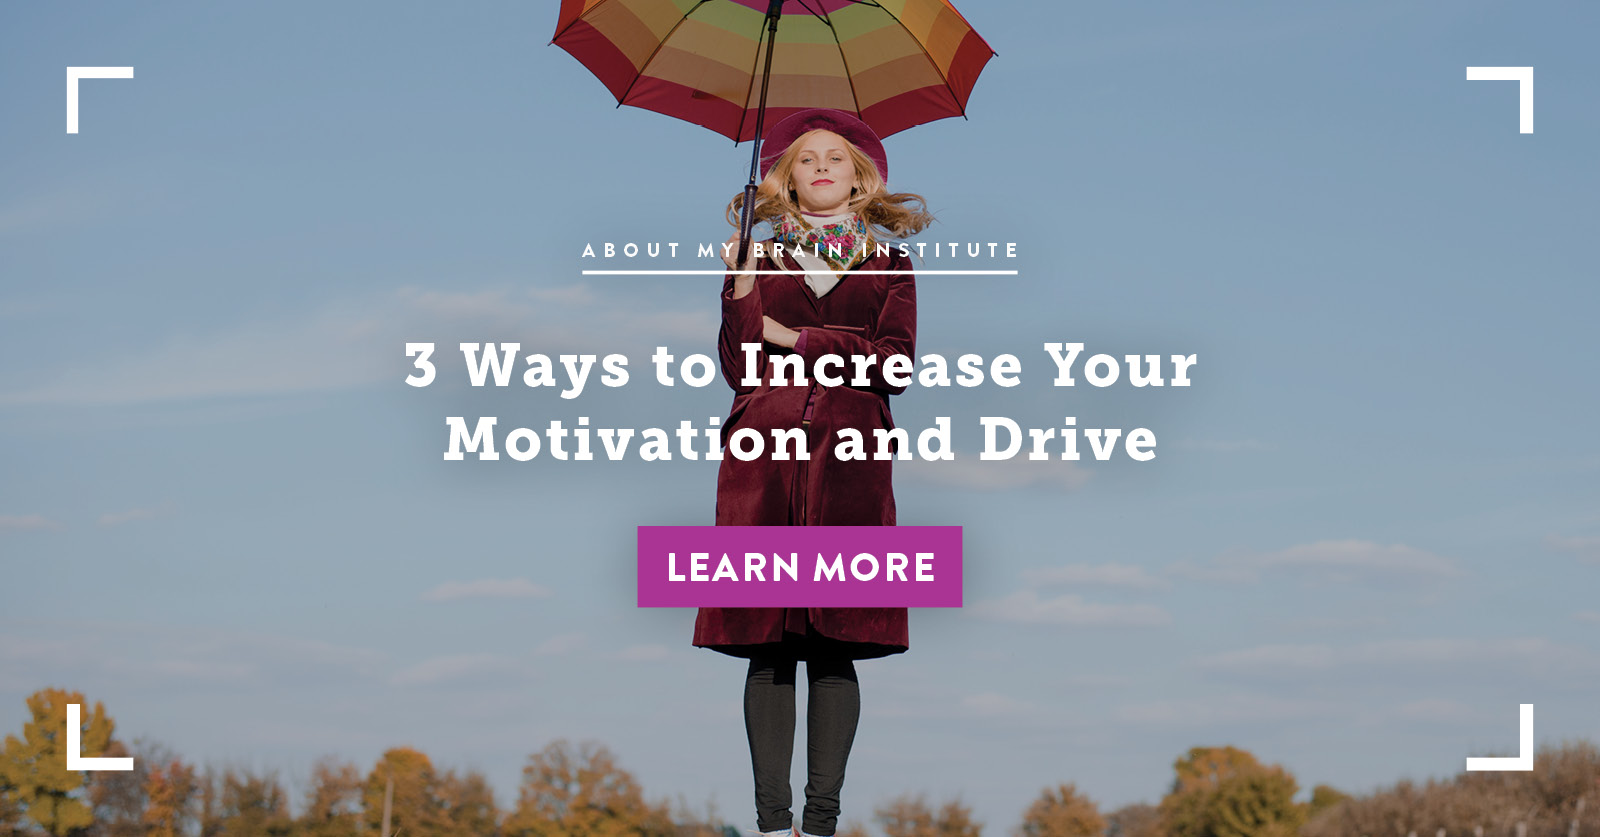 3 Ways to Increase Your Motivation and Drive